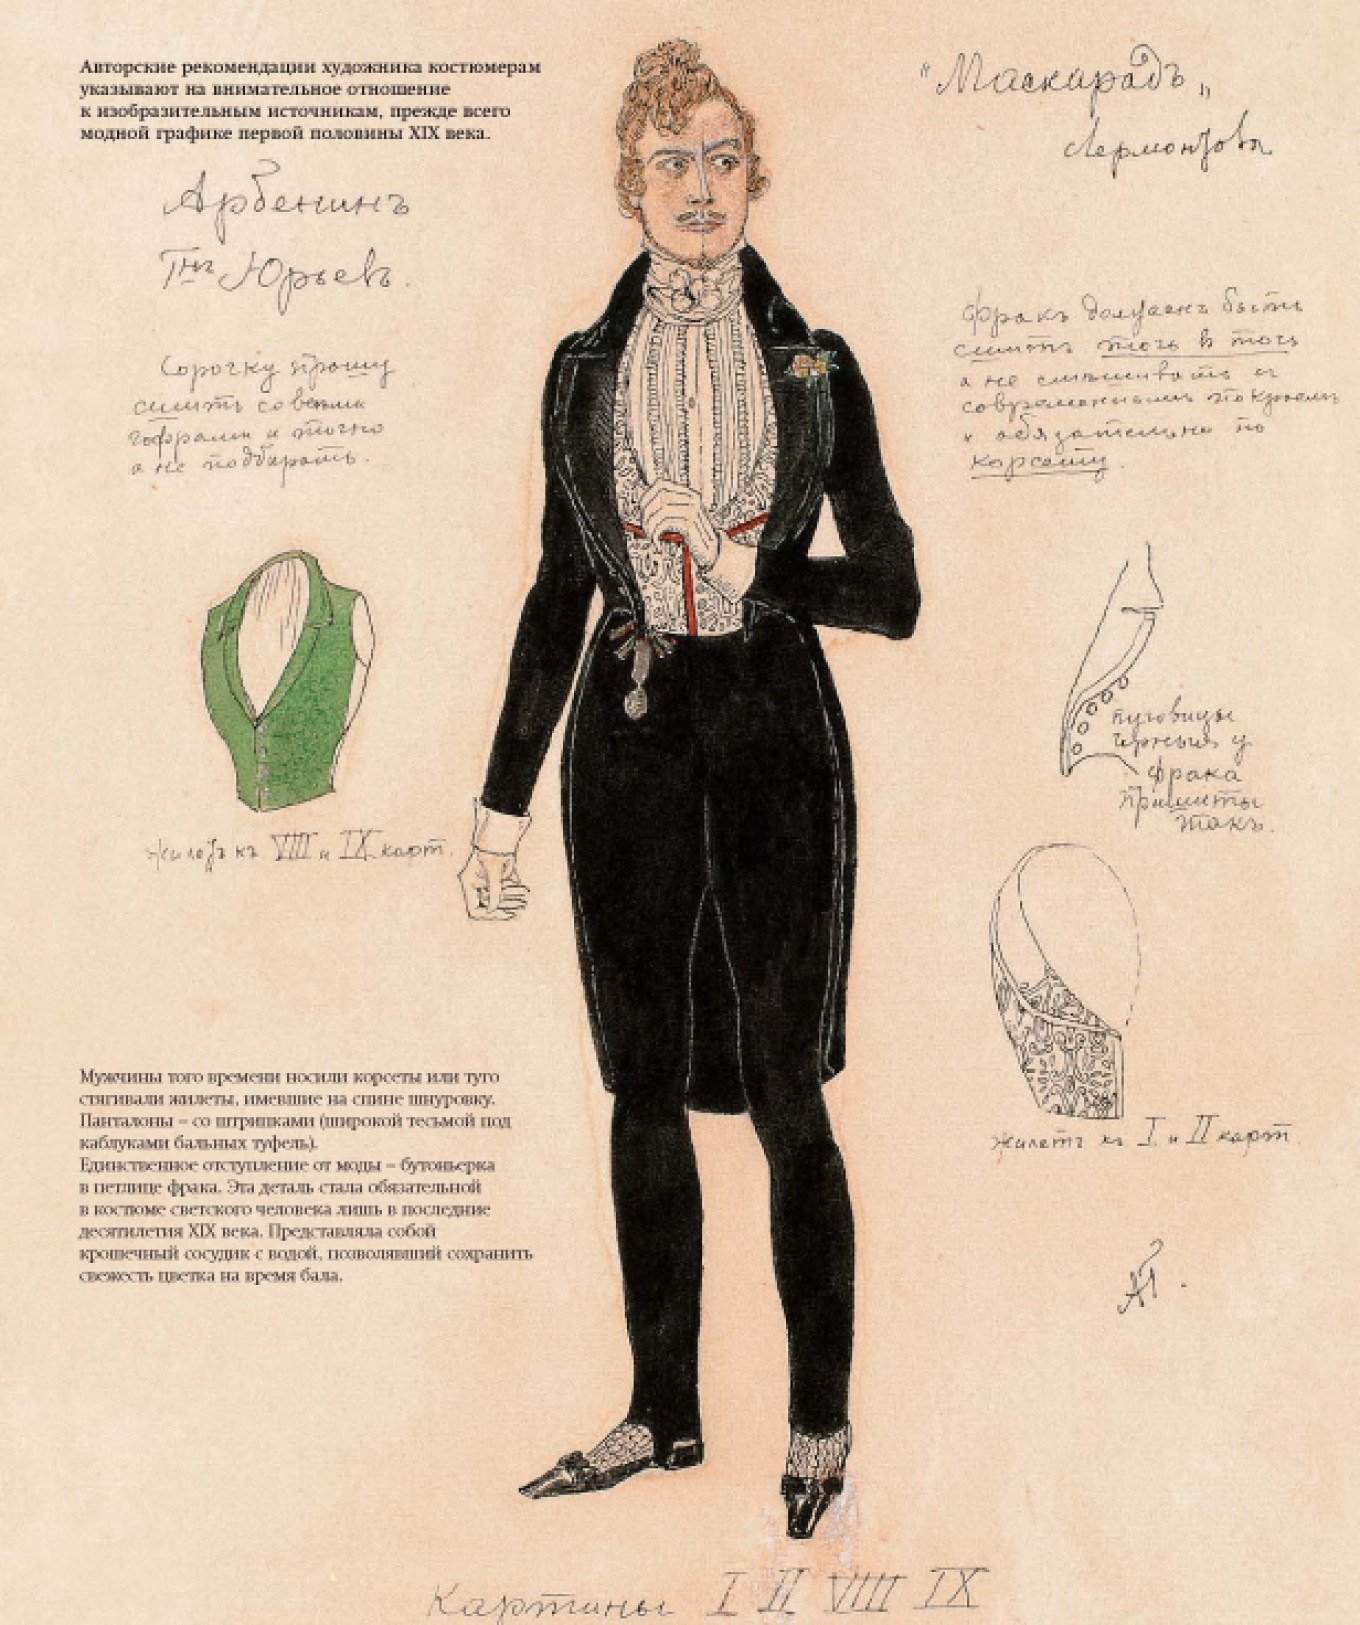 Original costume design for the lead character, Arbenin, the murderous jealous husband.  Photo permission provided by the press service of Alexandrinsky Theater.